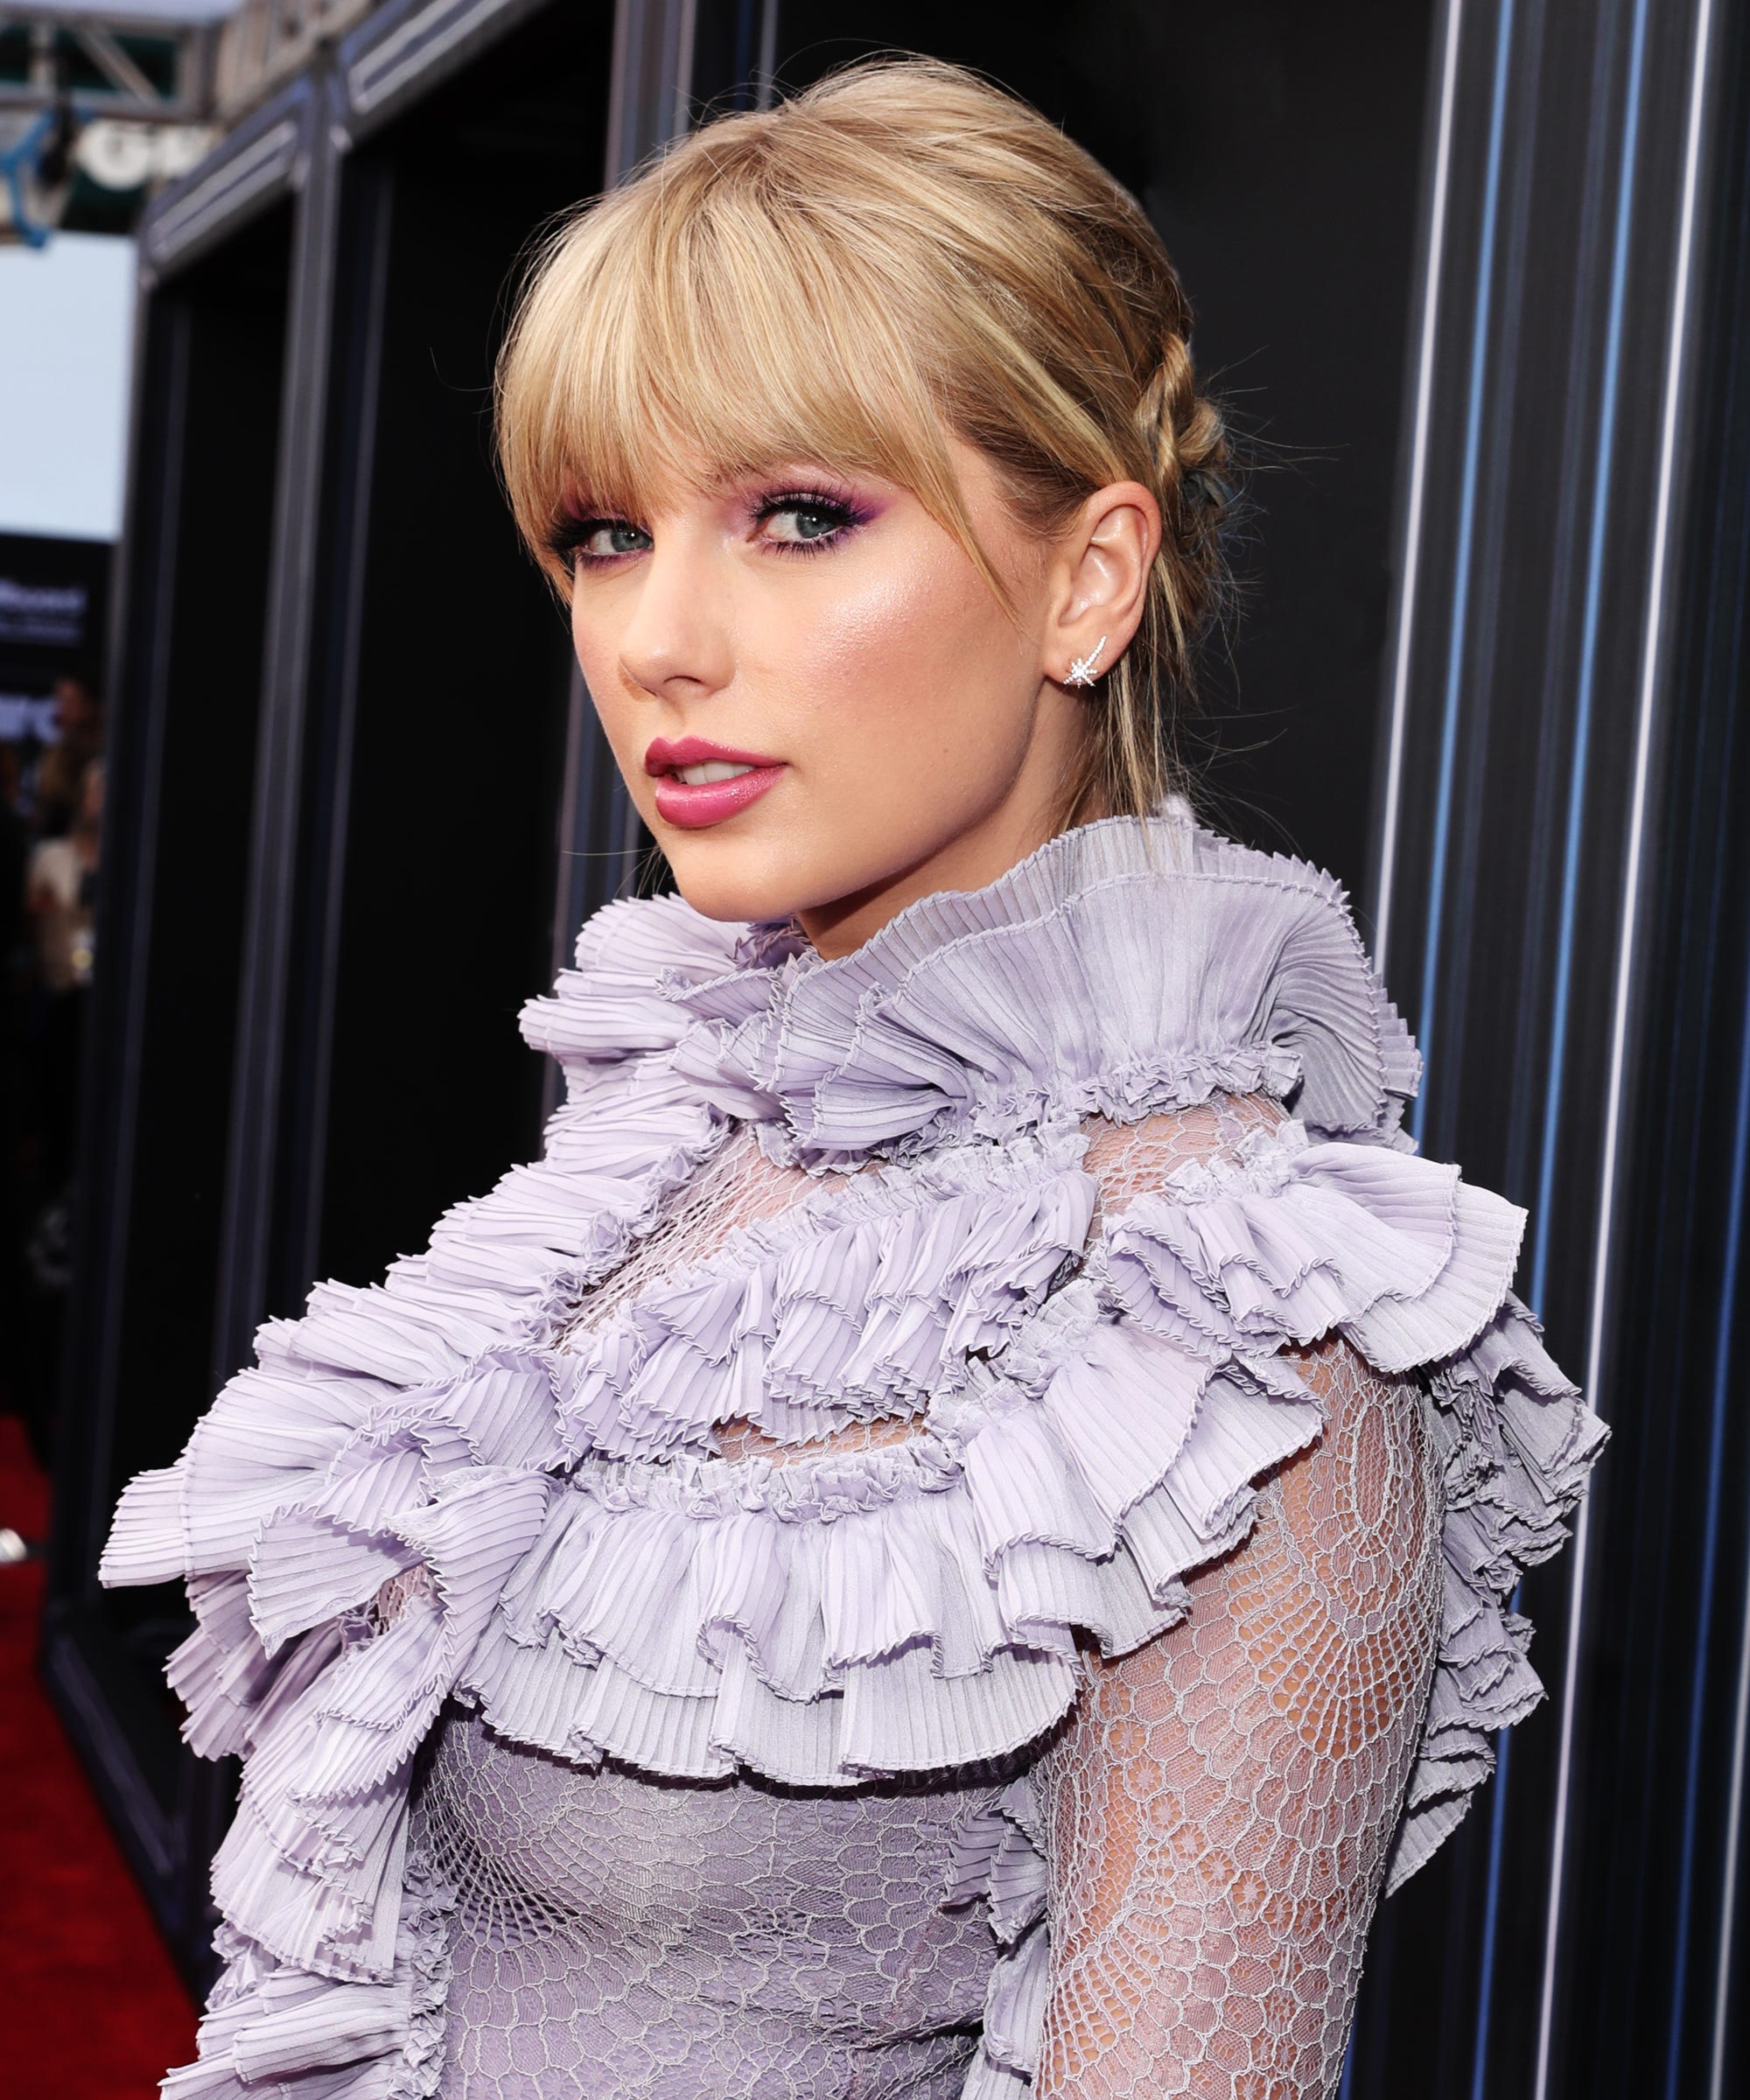 Taylor Swift New Lover Song The Archer Theories Details